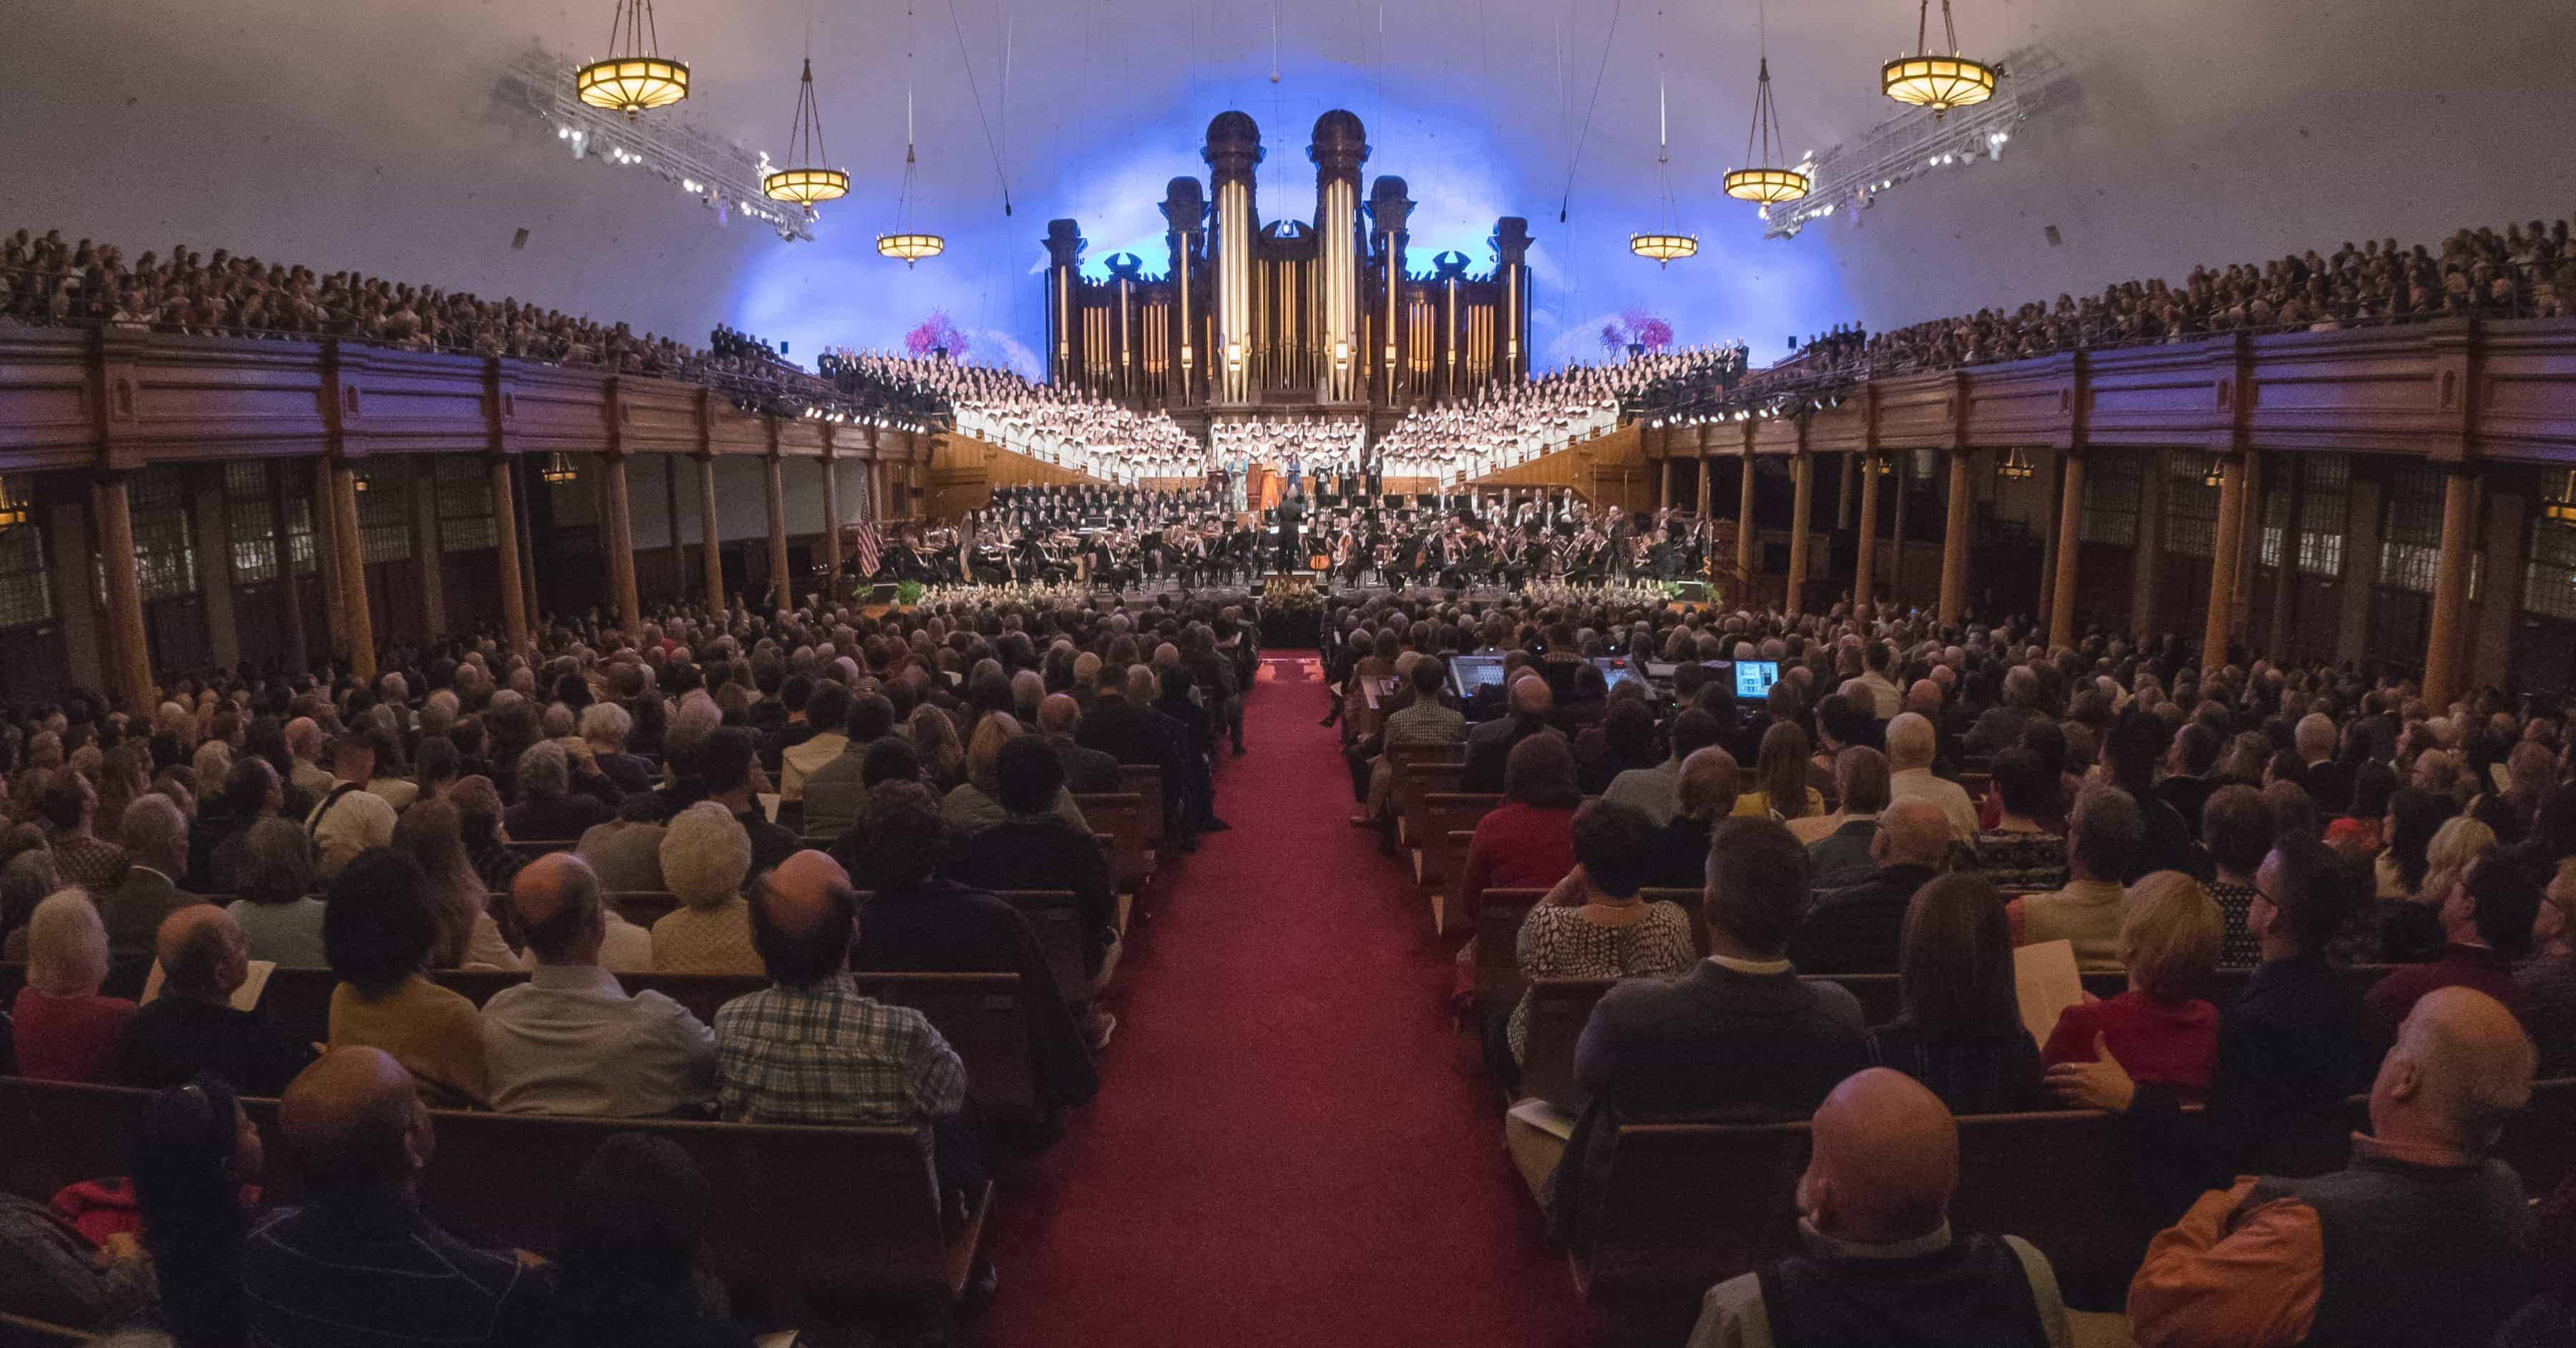 The Utah Symphony and the Mormon Tabernacle Choir